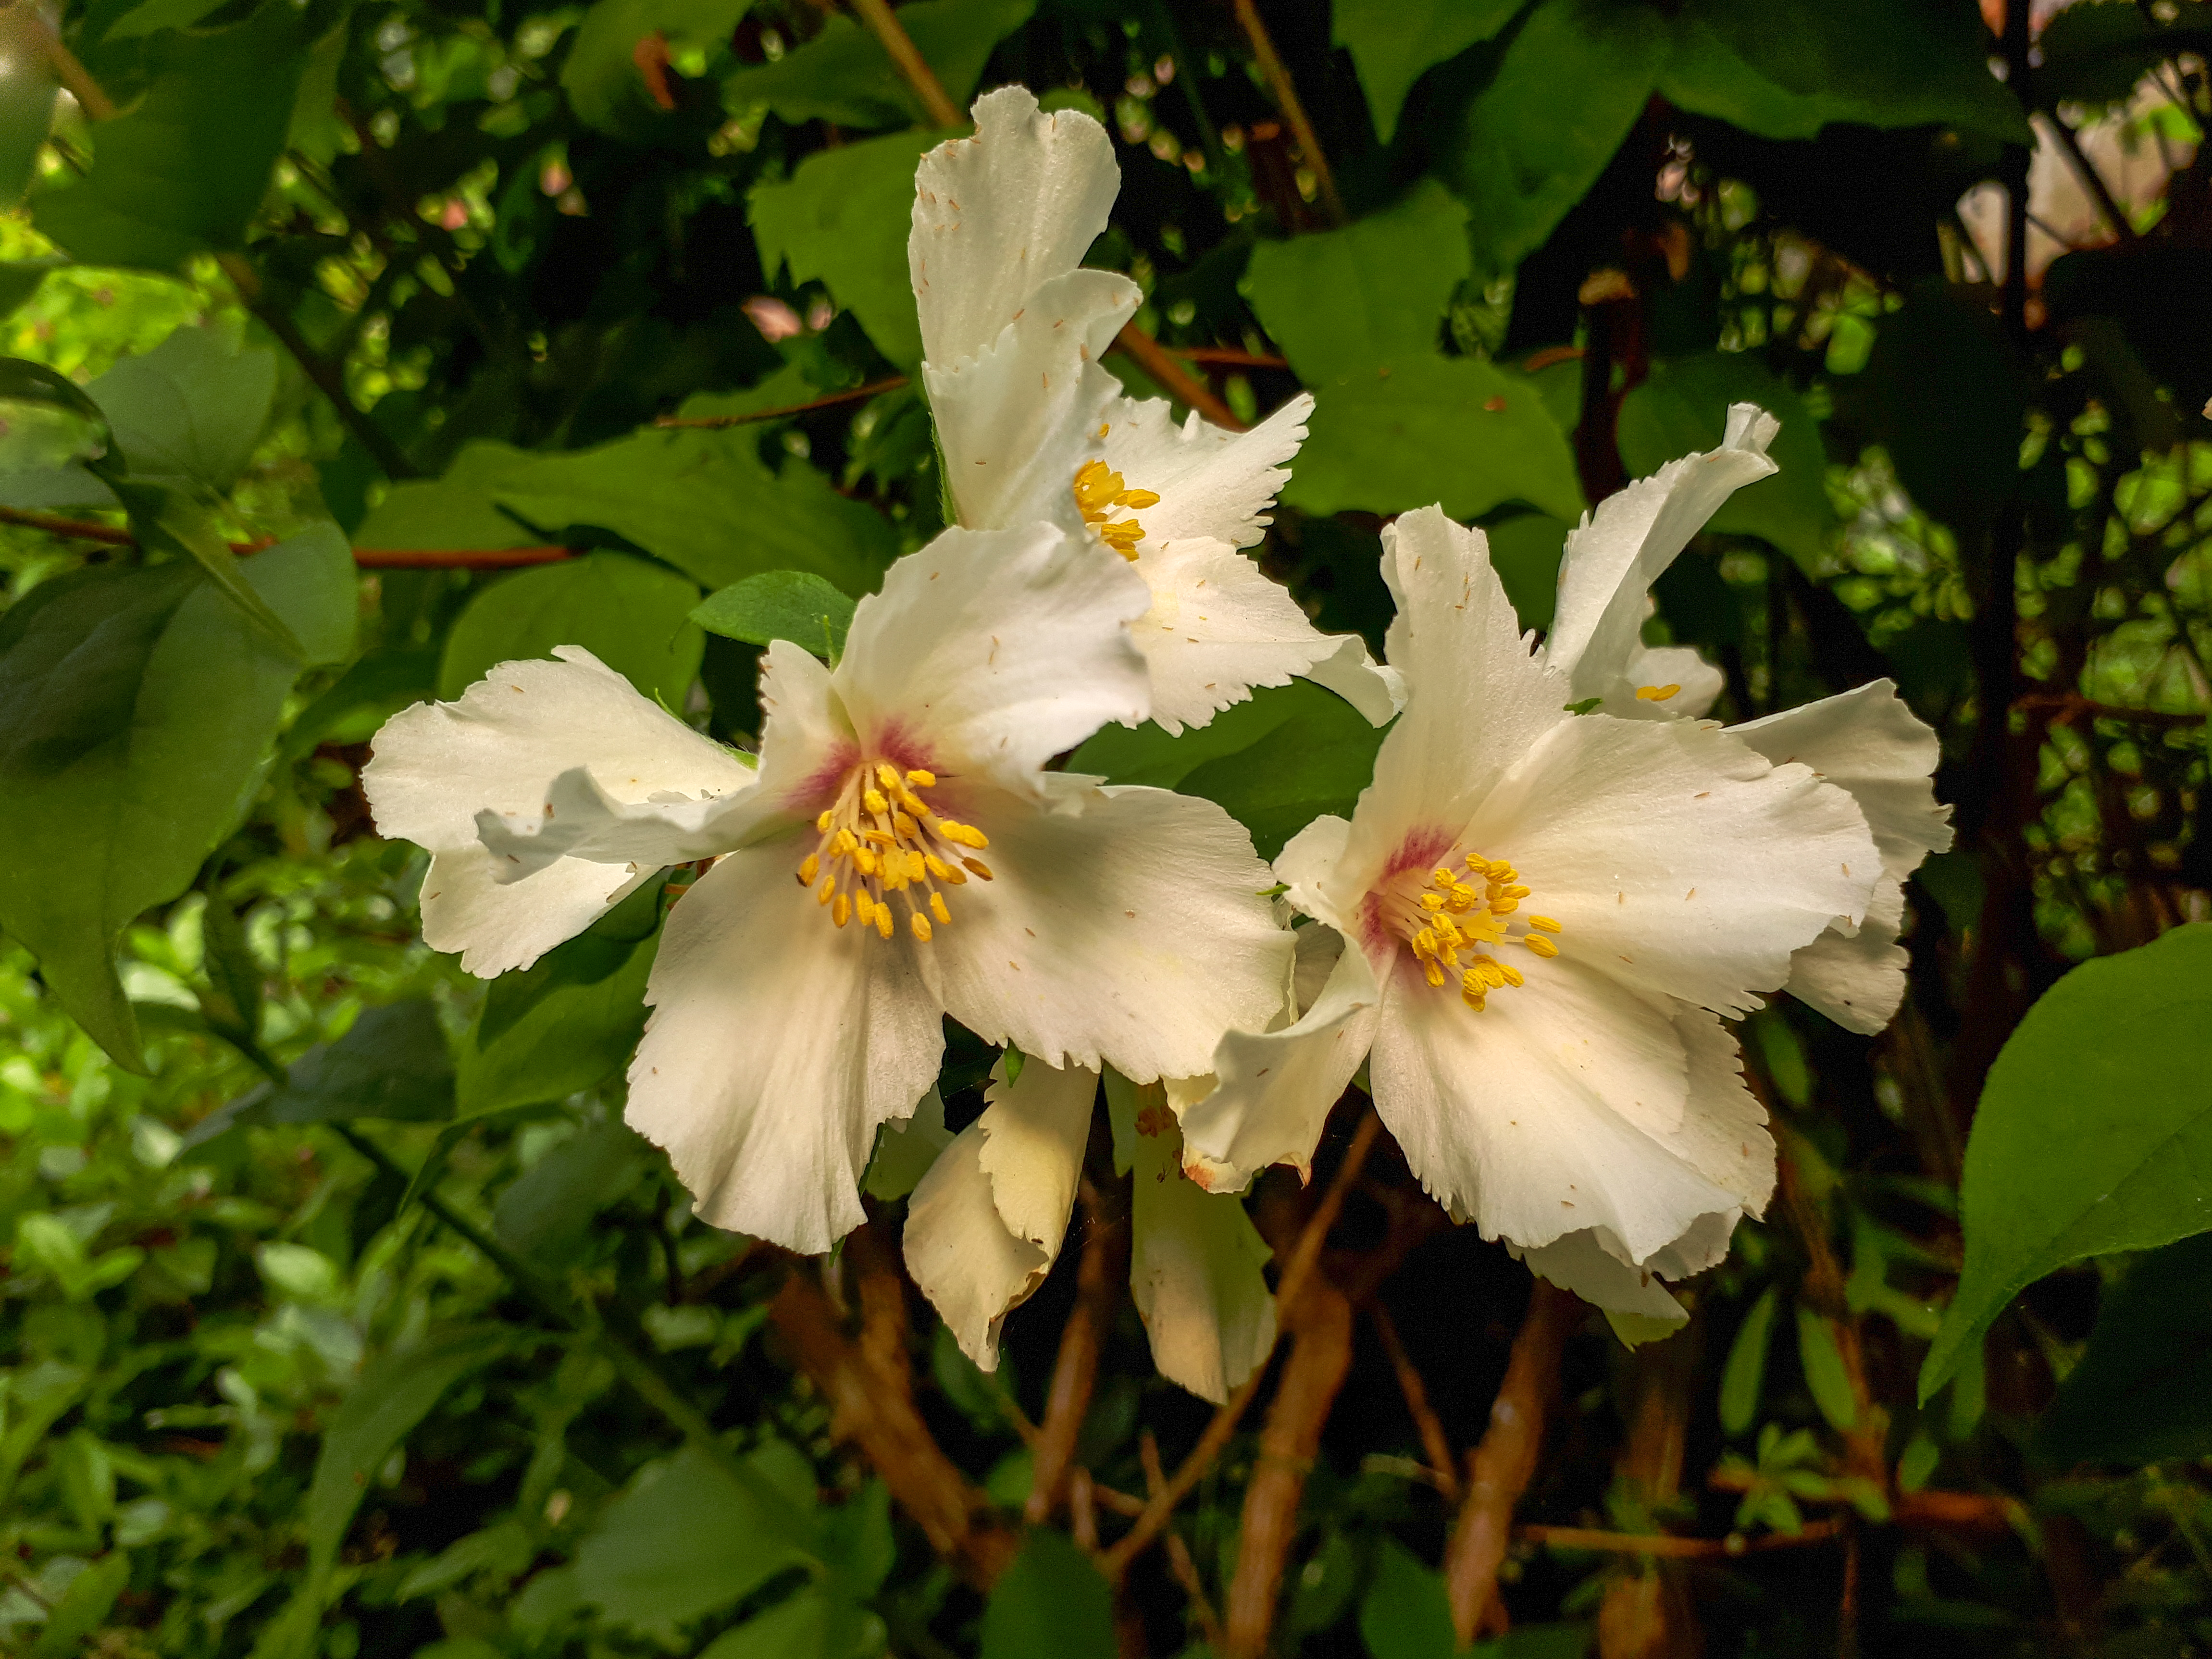 White Philadelphus Flowers in the Garden